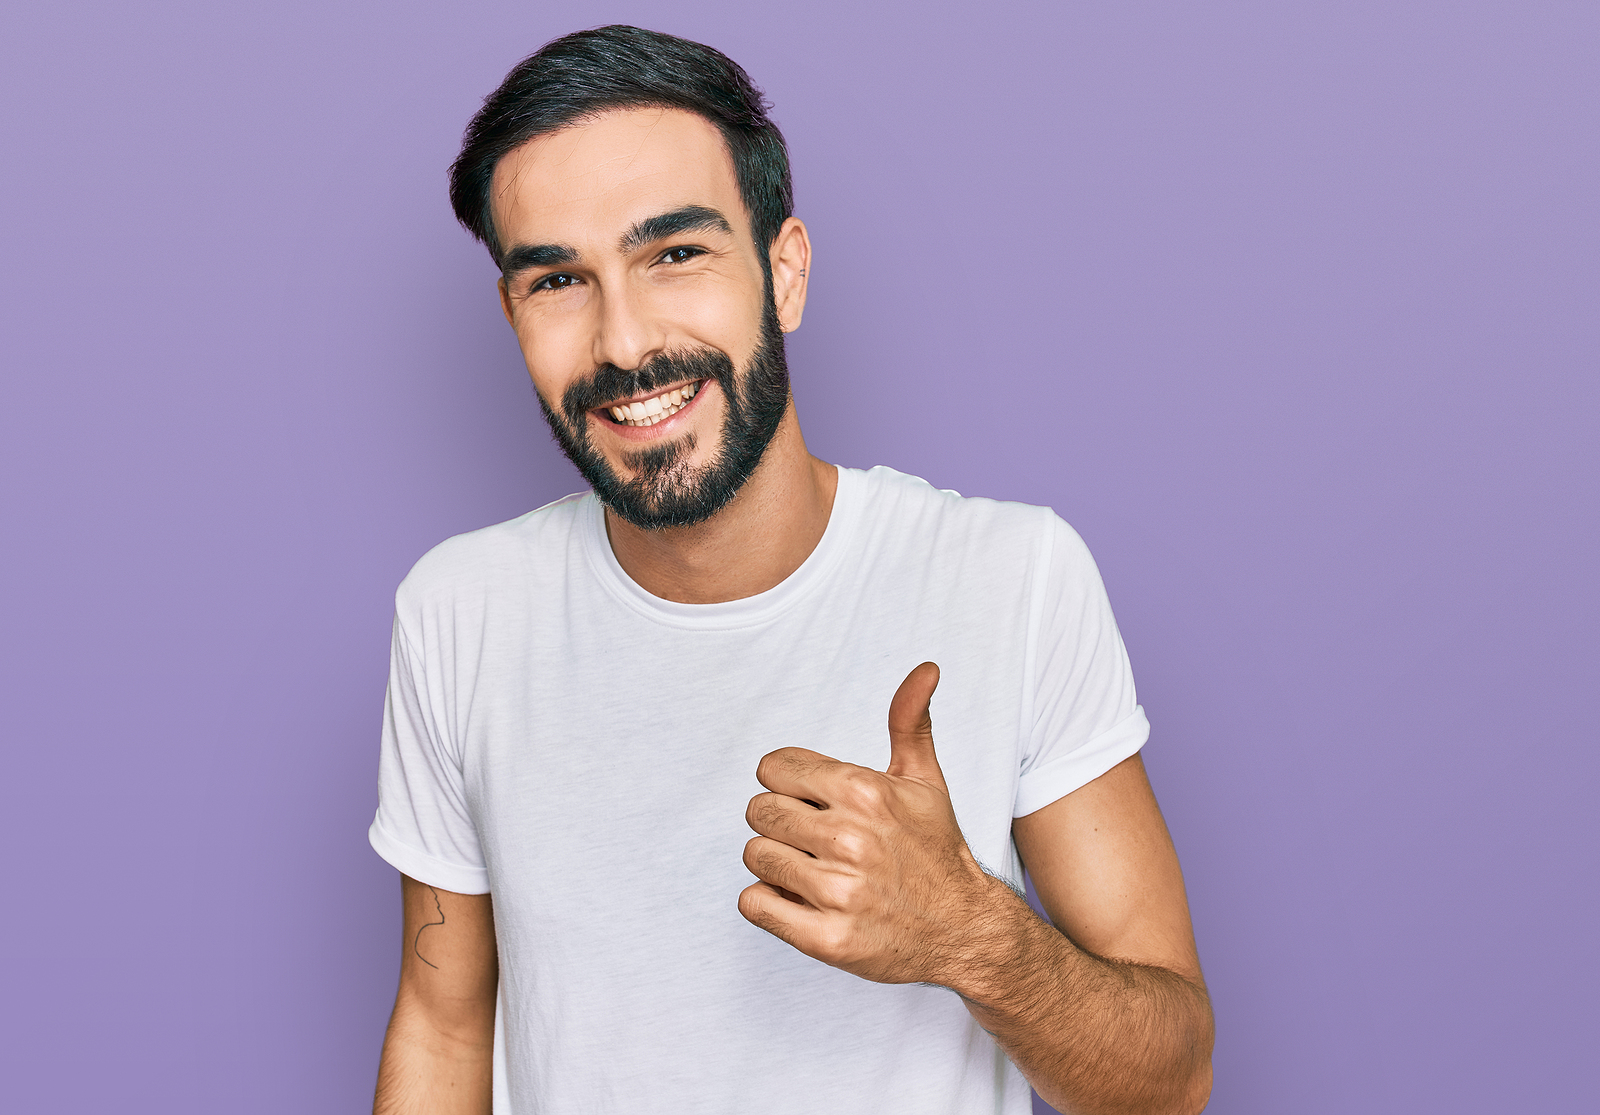 Picture of a man smiling with a beard and a white t shirt with thumbs up on purple background.